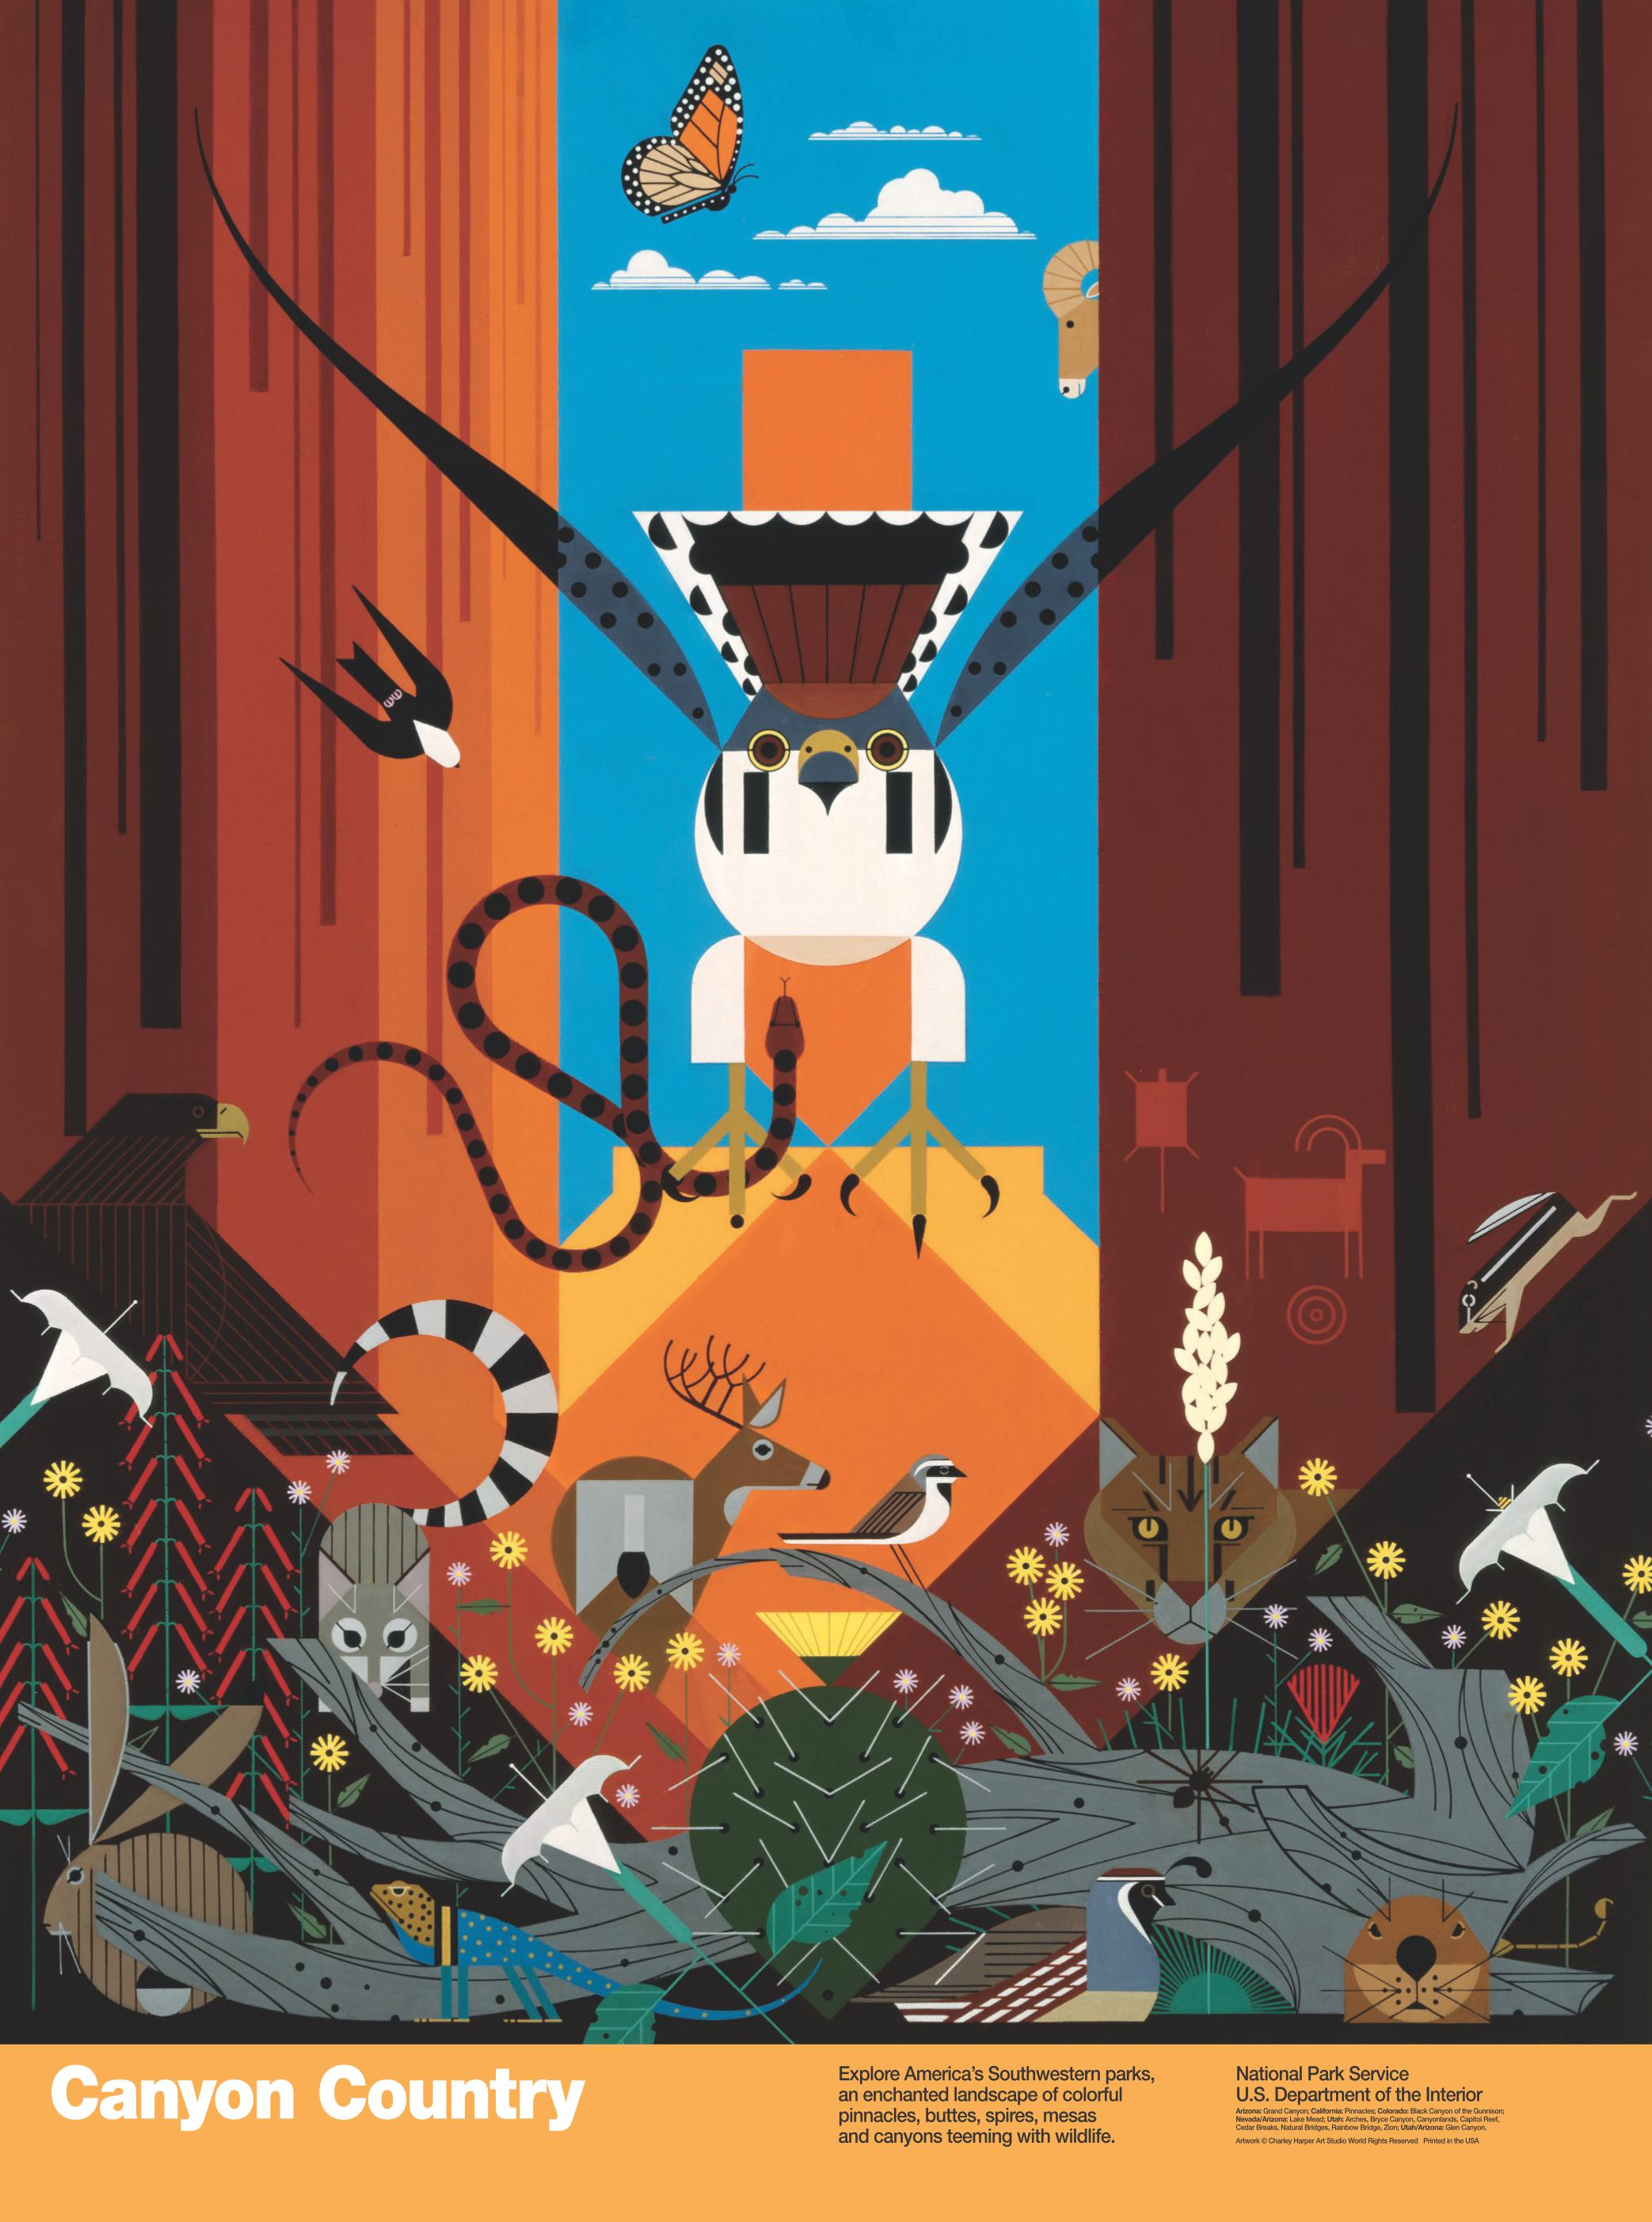 Canyon Country (Charley Harper)